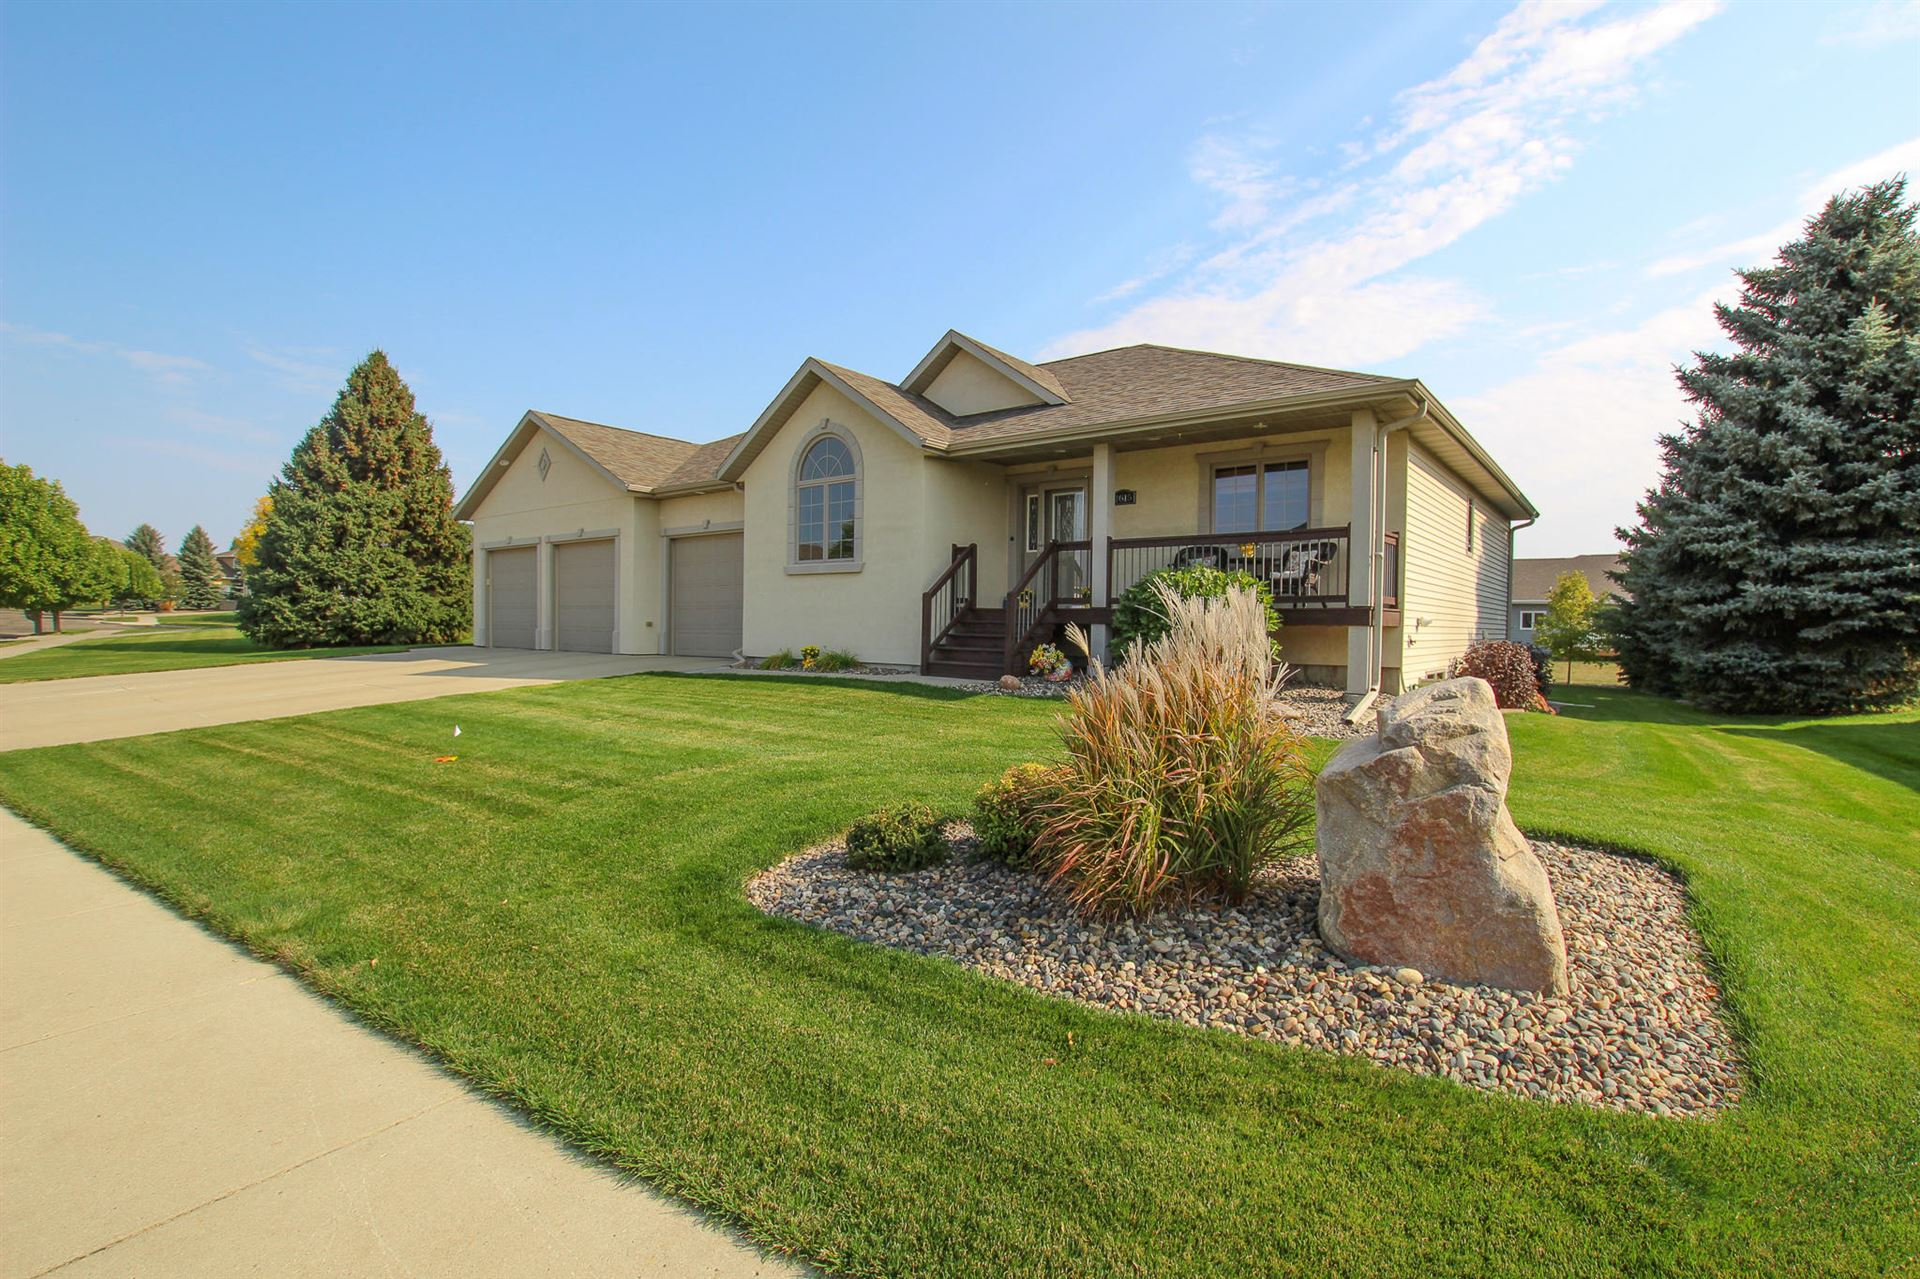 2815 Promontory Drive, Bismarck, ND 58503 - #: 408524